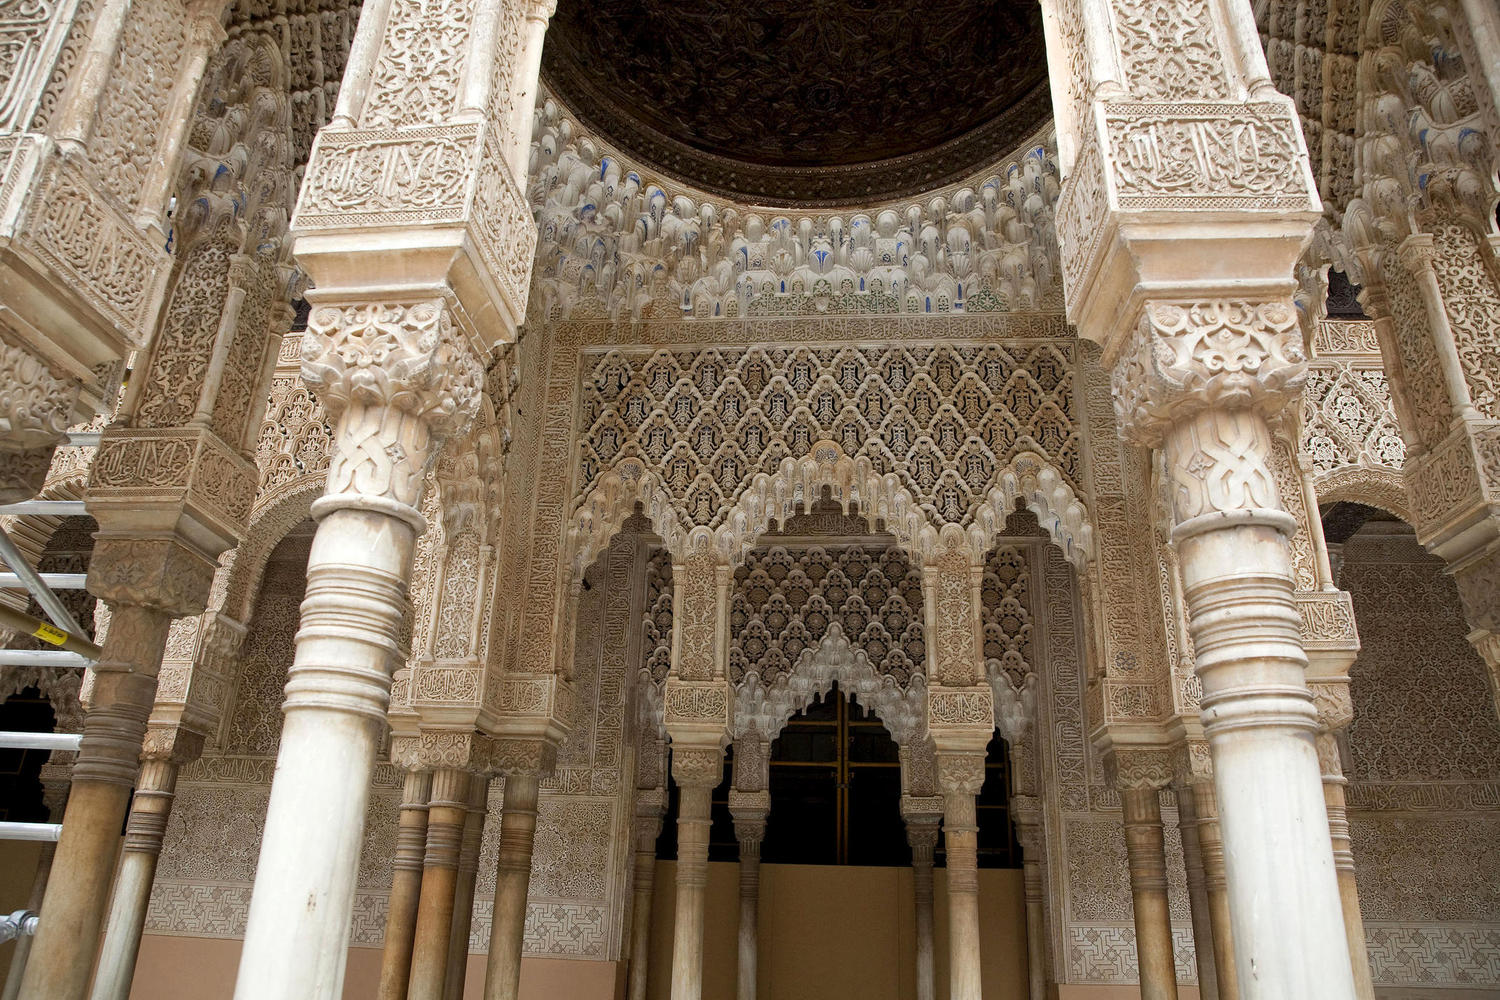 The Alhambra represents one of the finest examples of Islamic art in the world.